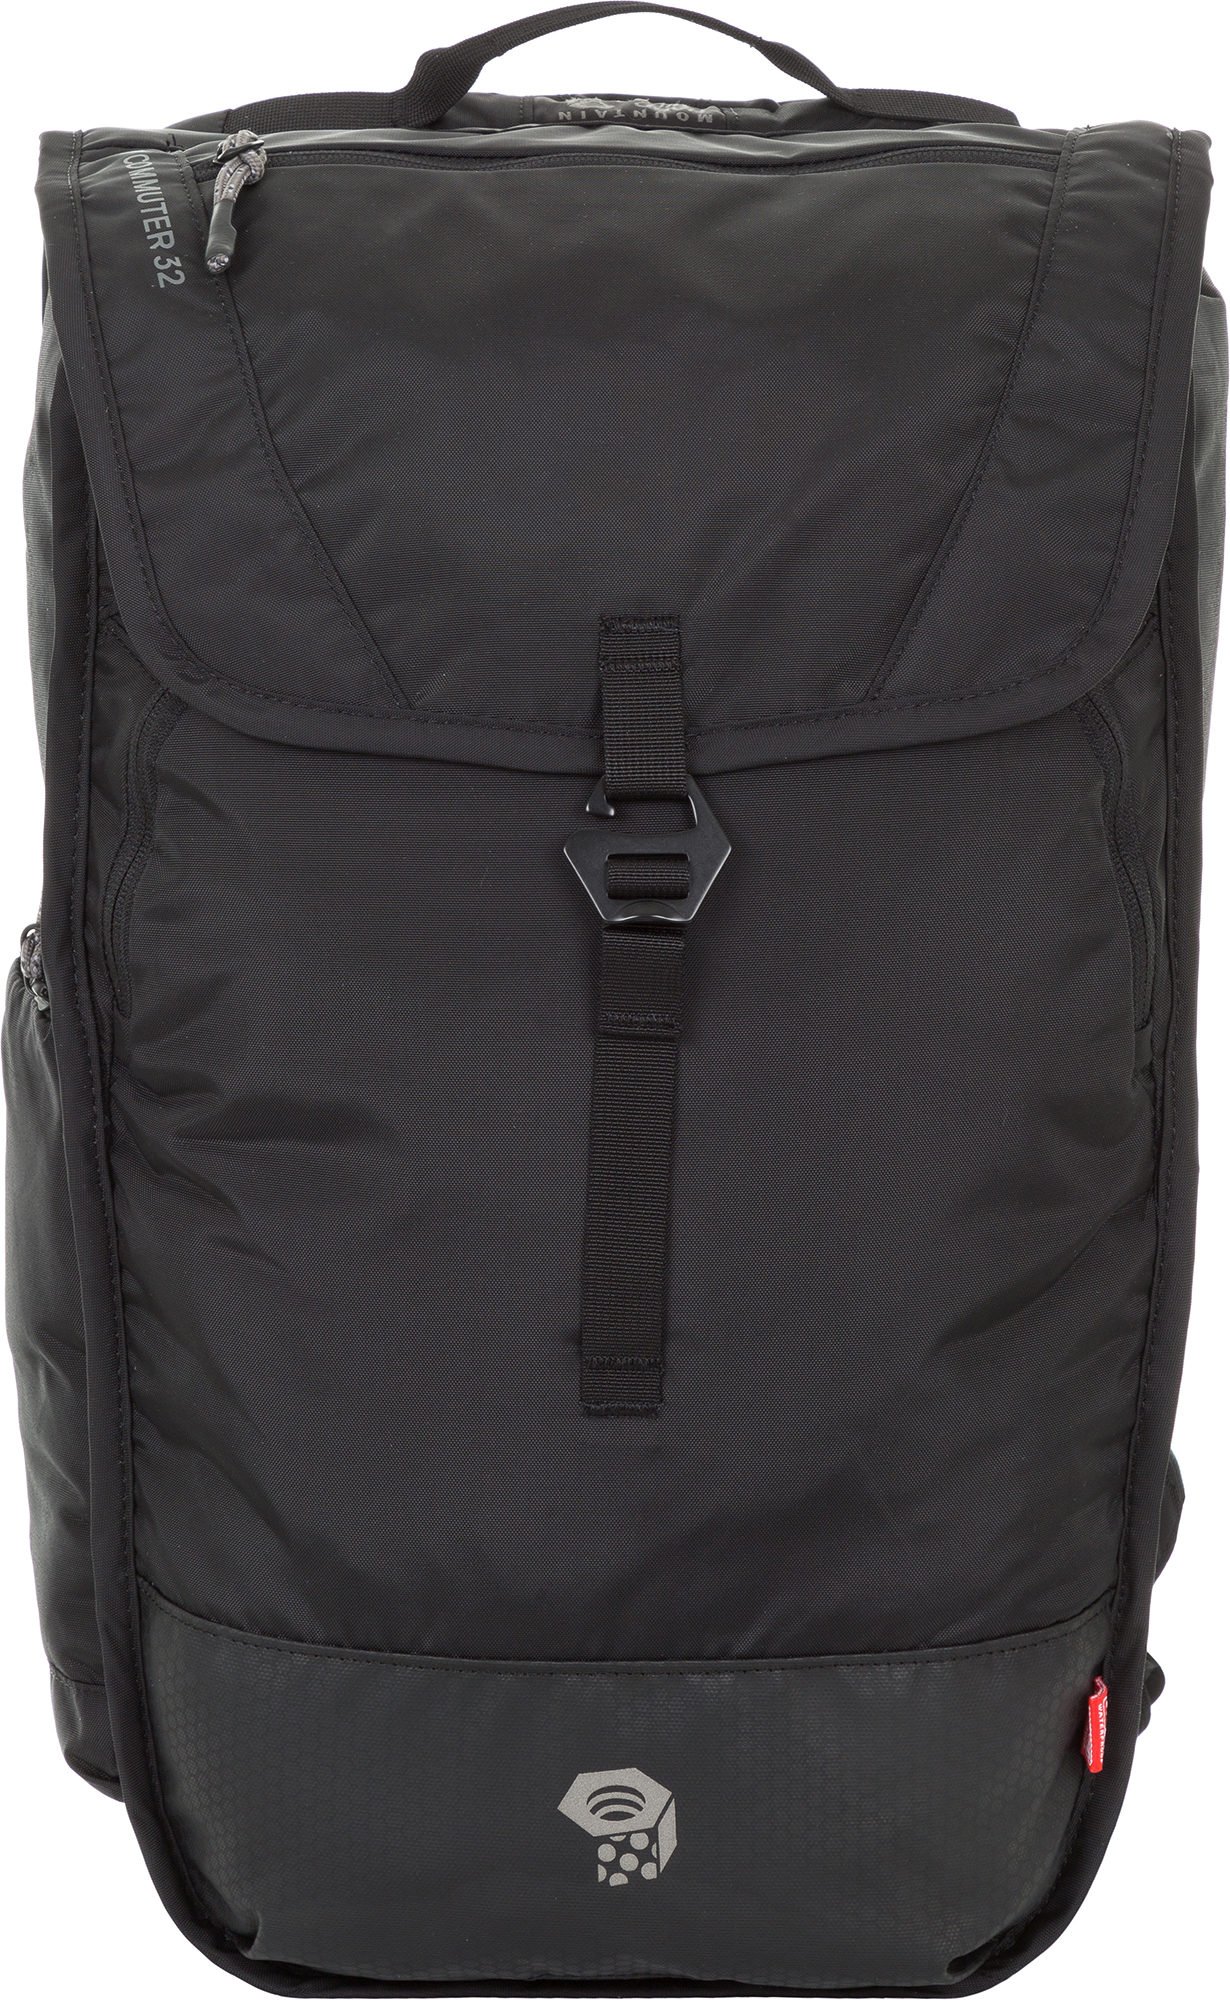 Mountain Hardwear Mountain Hardwear DryCommuter 32L OutDry, размер Без размера